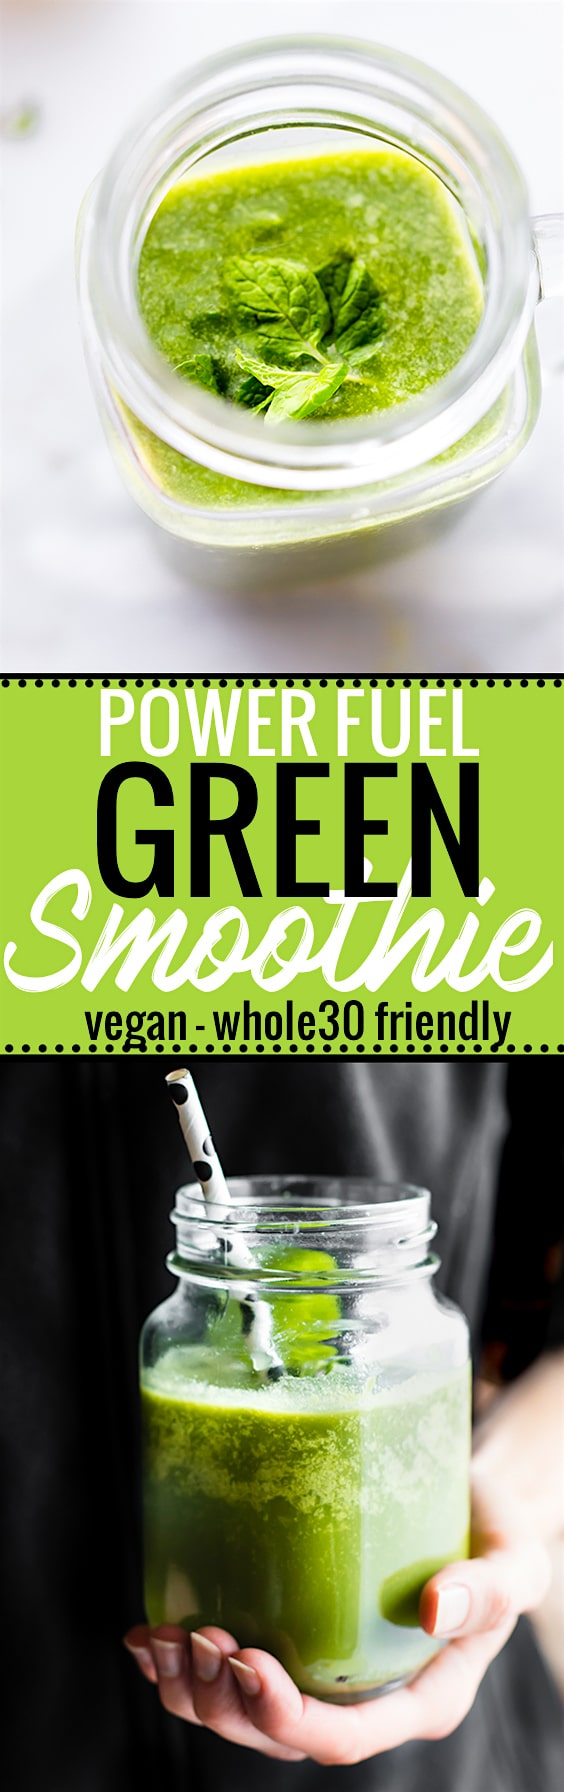 A POWER FUEL Green Smoothie to kick start the day. Jammed packed with super food nutrients that work in synergy to BOOST energy!. Easy (easier) to digest. Paleo, vegan, and whole 30 friendly. www.cottercrunch.com @cottercrunch